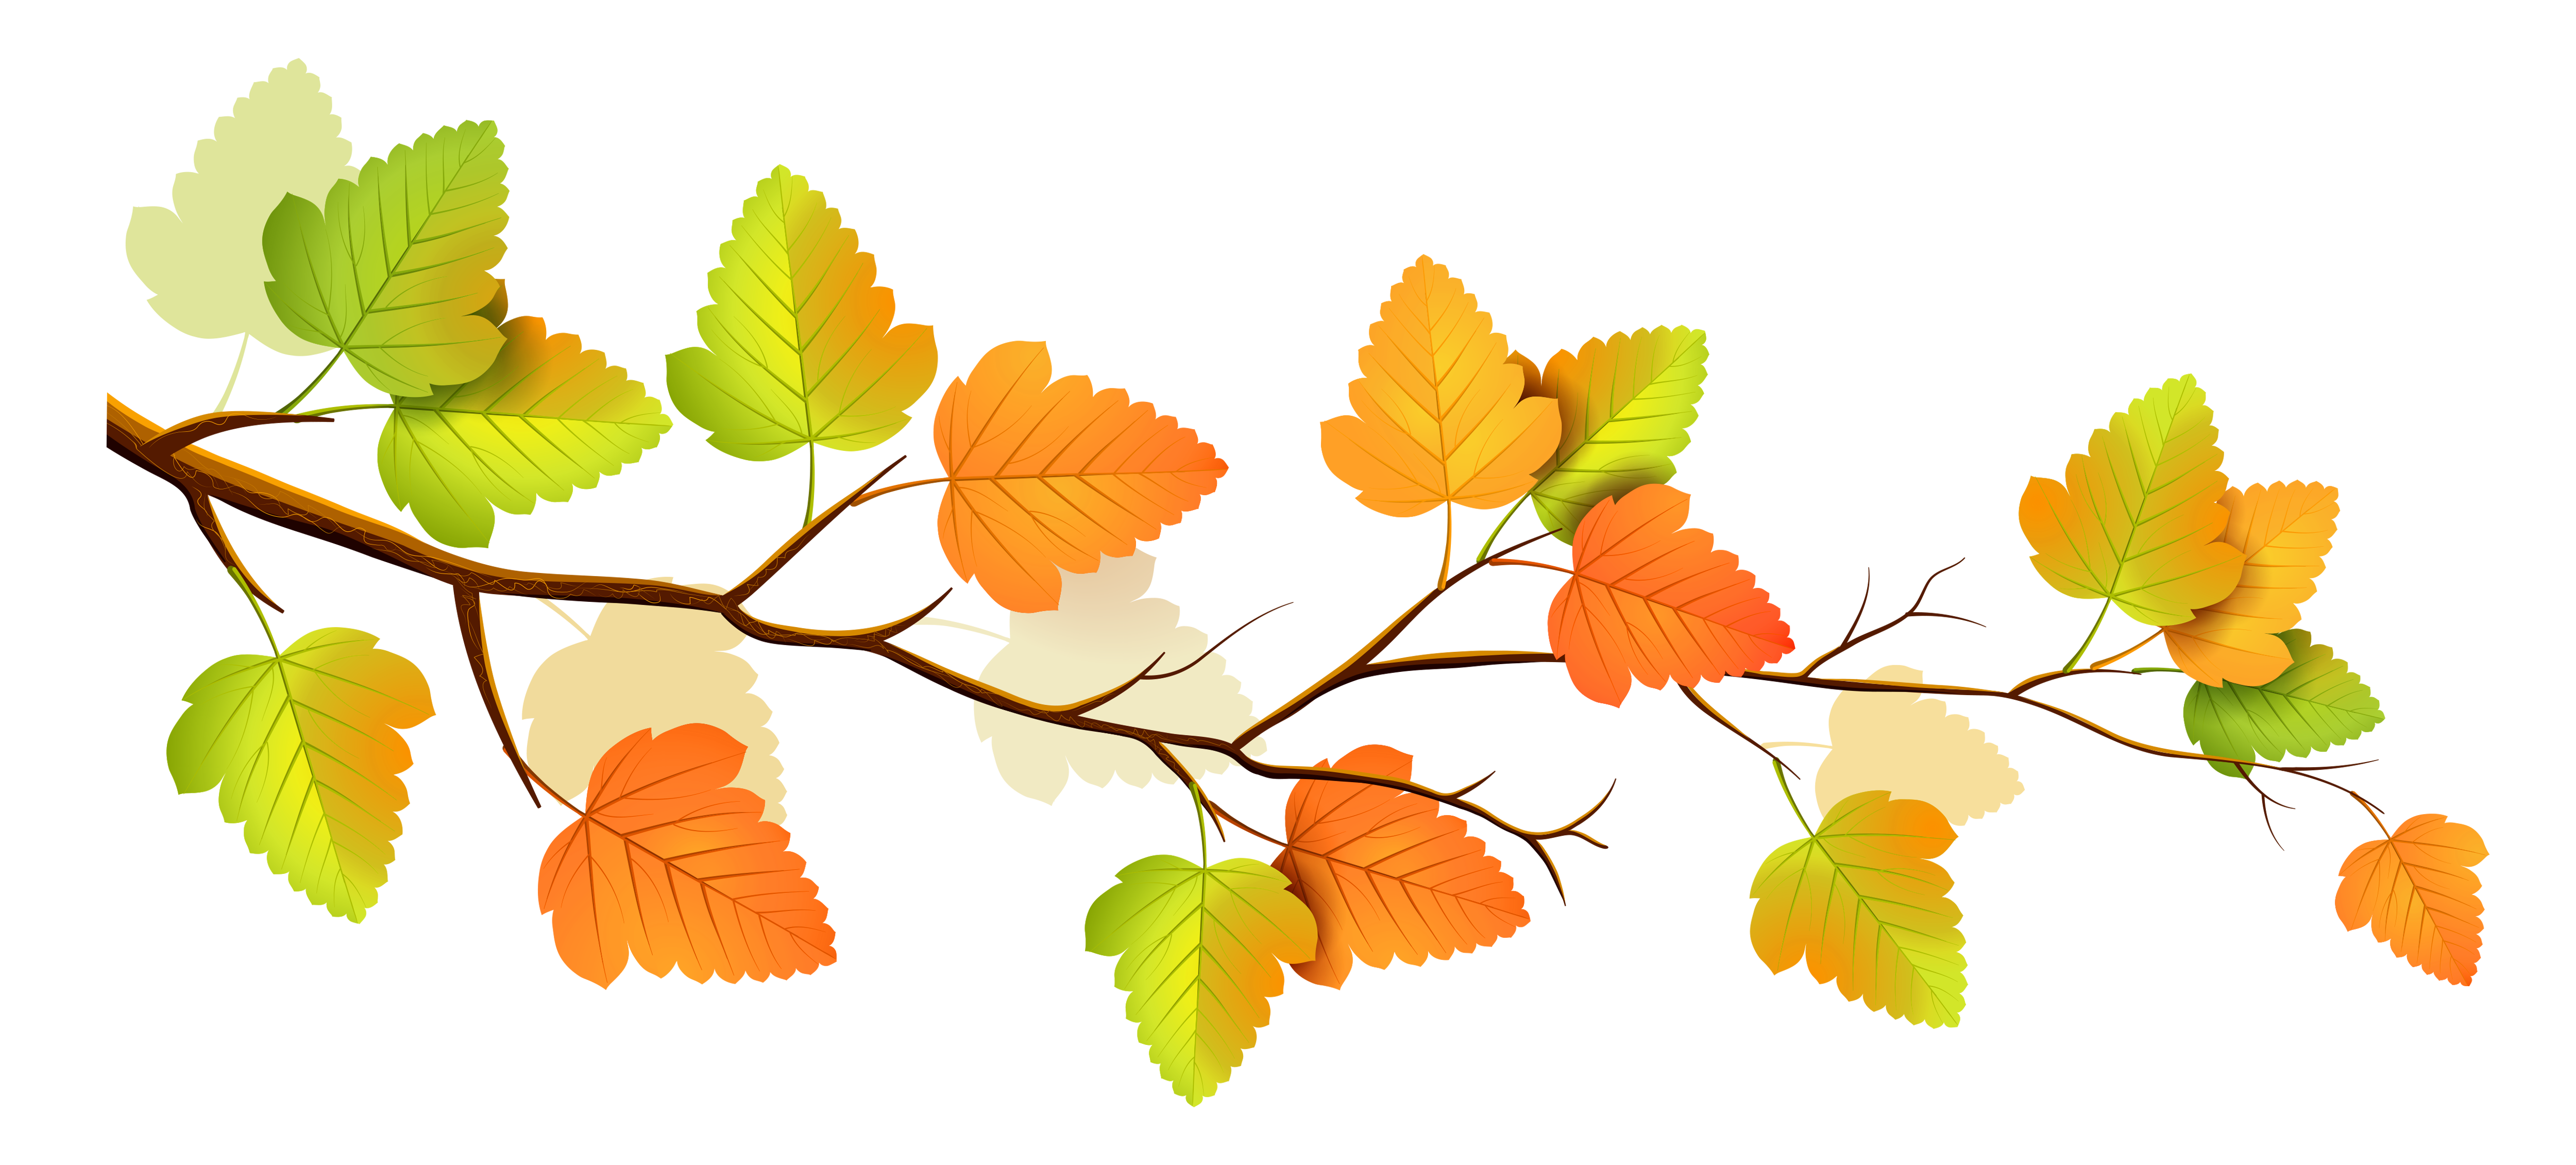 Autumn flower clipart image free Fall Flowers Clipart at GetDrawings.com   Free for personal use Fall ... image free